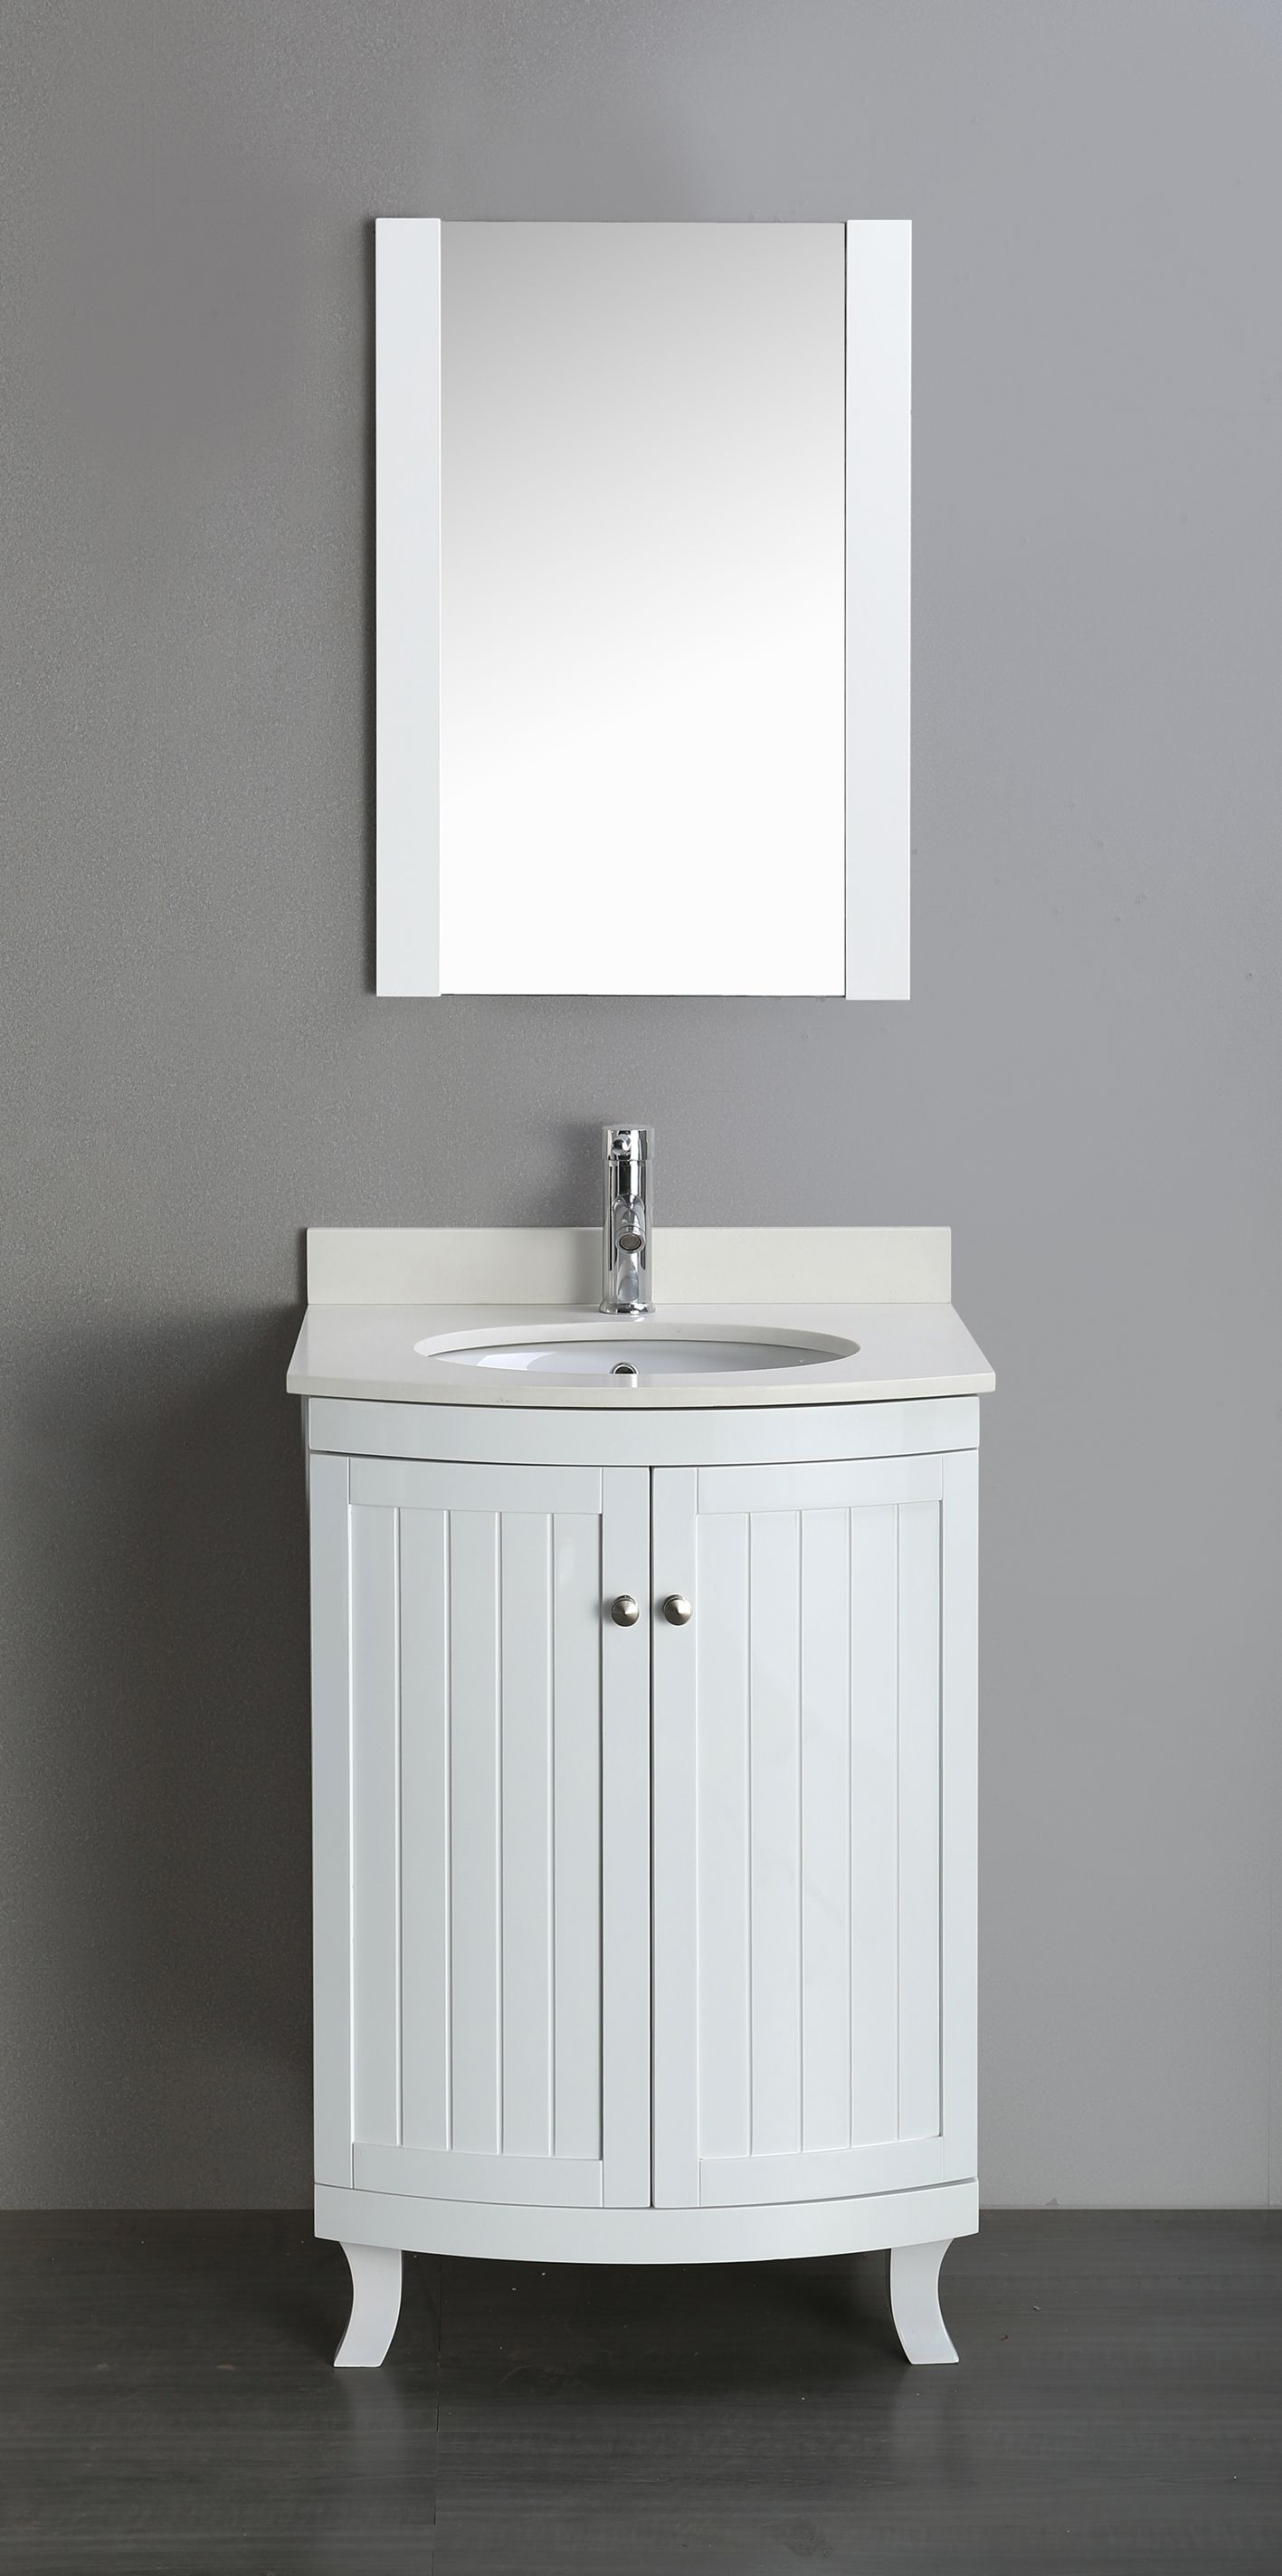 Available at Decors R Us in Paramus, NJ | Vanity, Bathroom ...